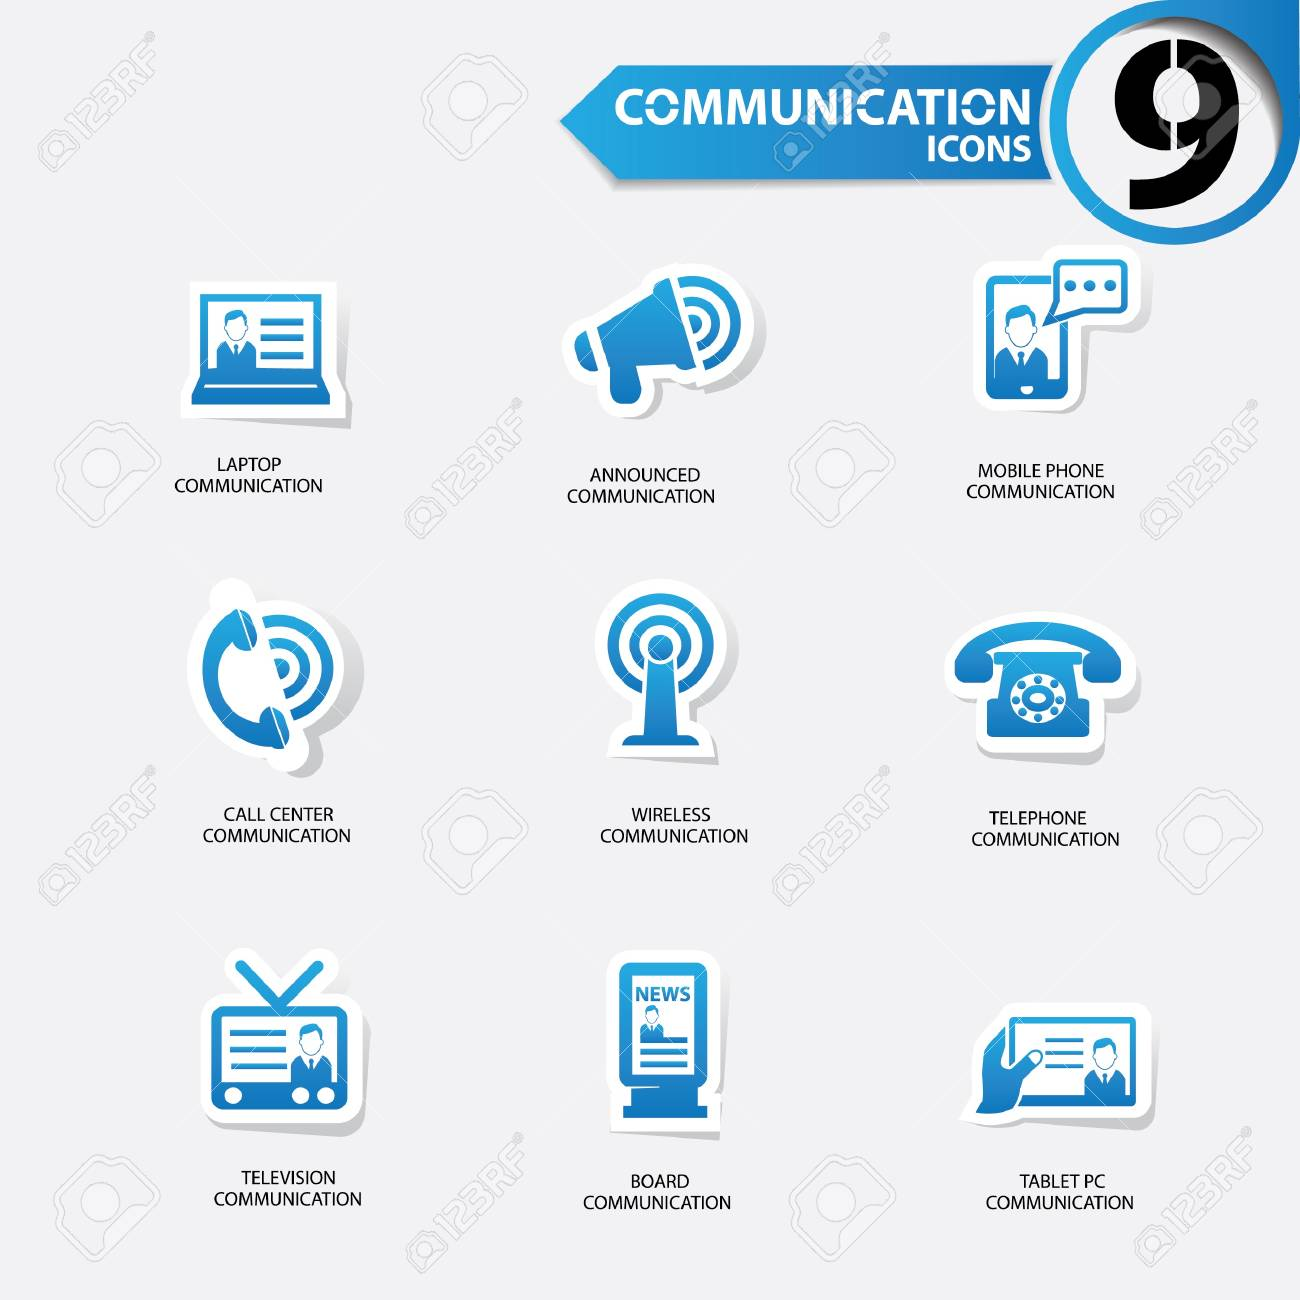 Communication icons Stock Vector - 20616391